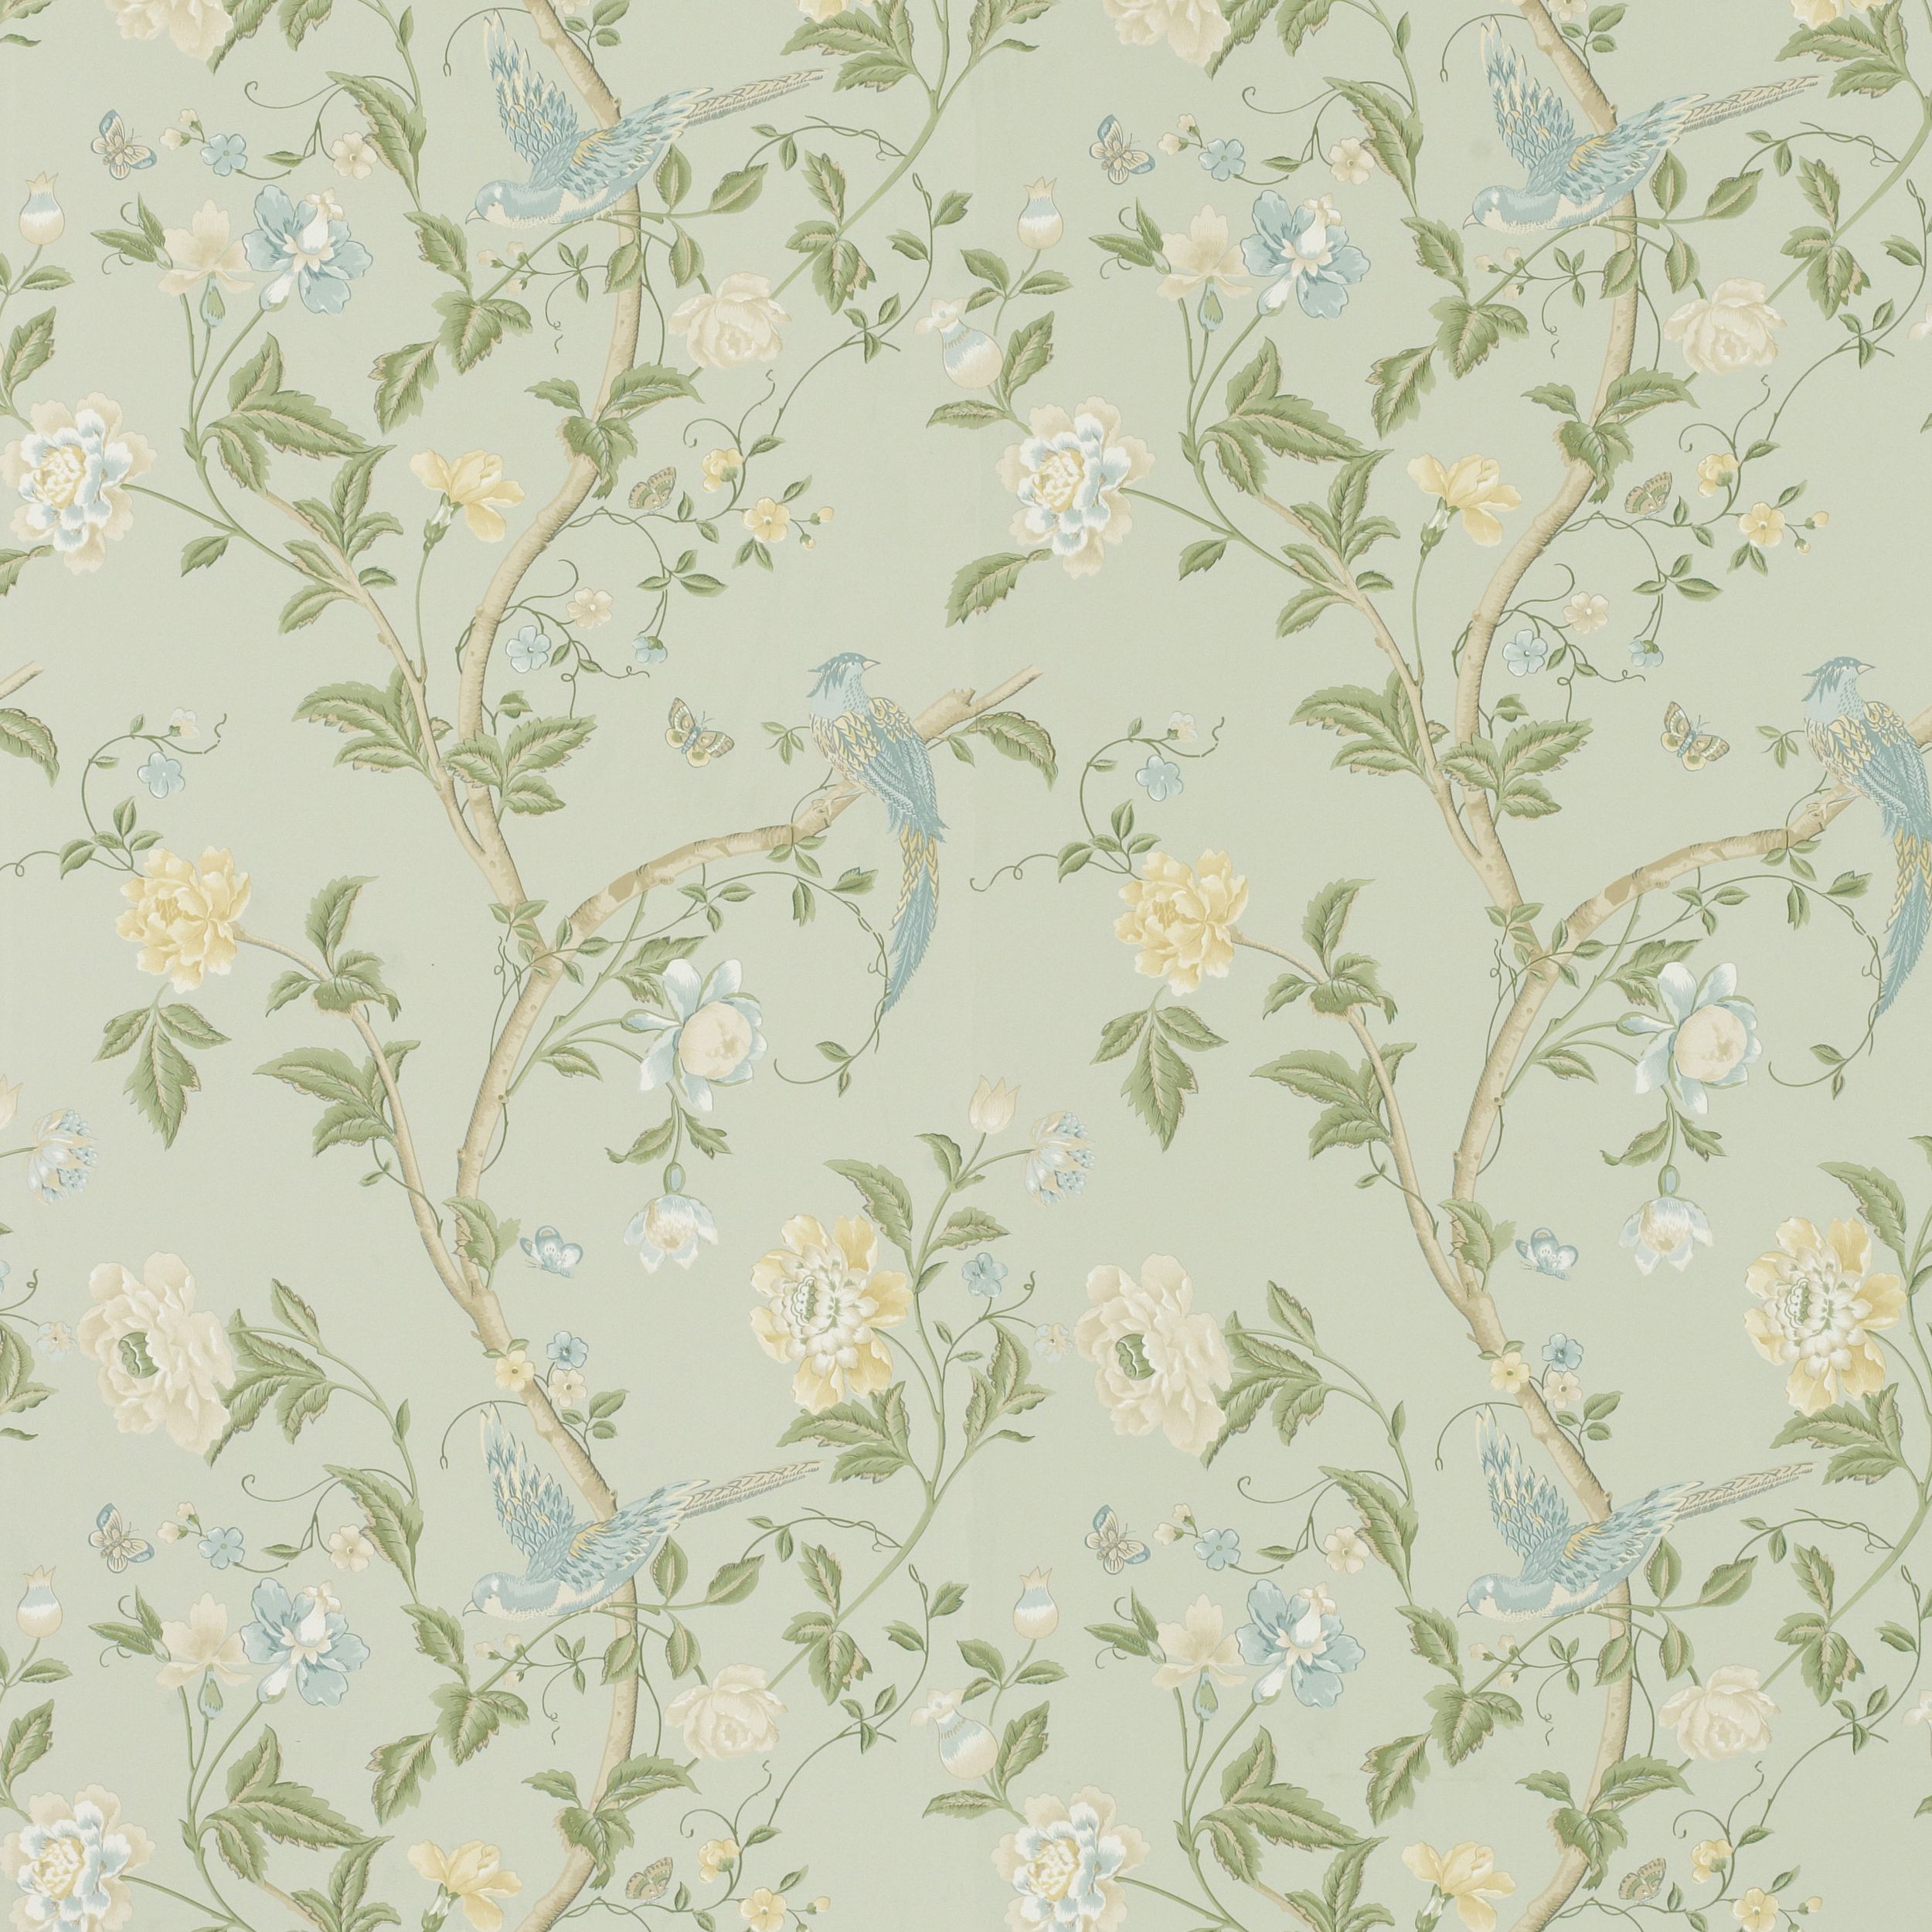 Laura Ashley Summer Palace Wallpaper - tempted to use this to up-cycle a  chest